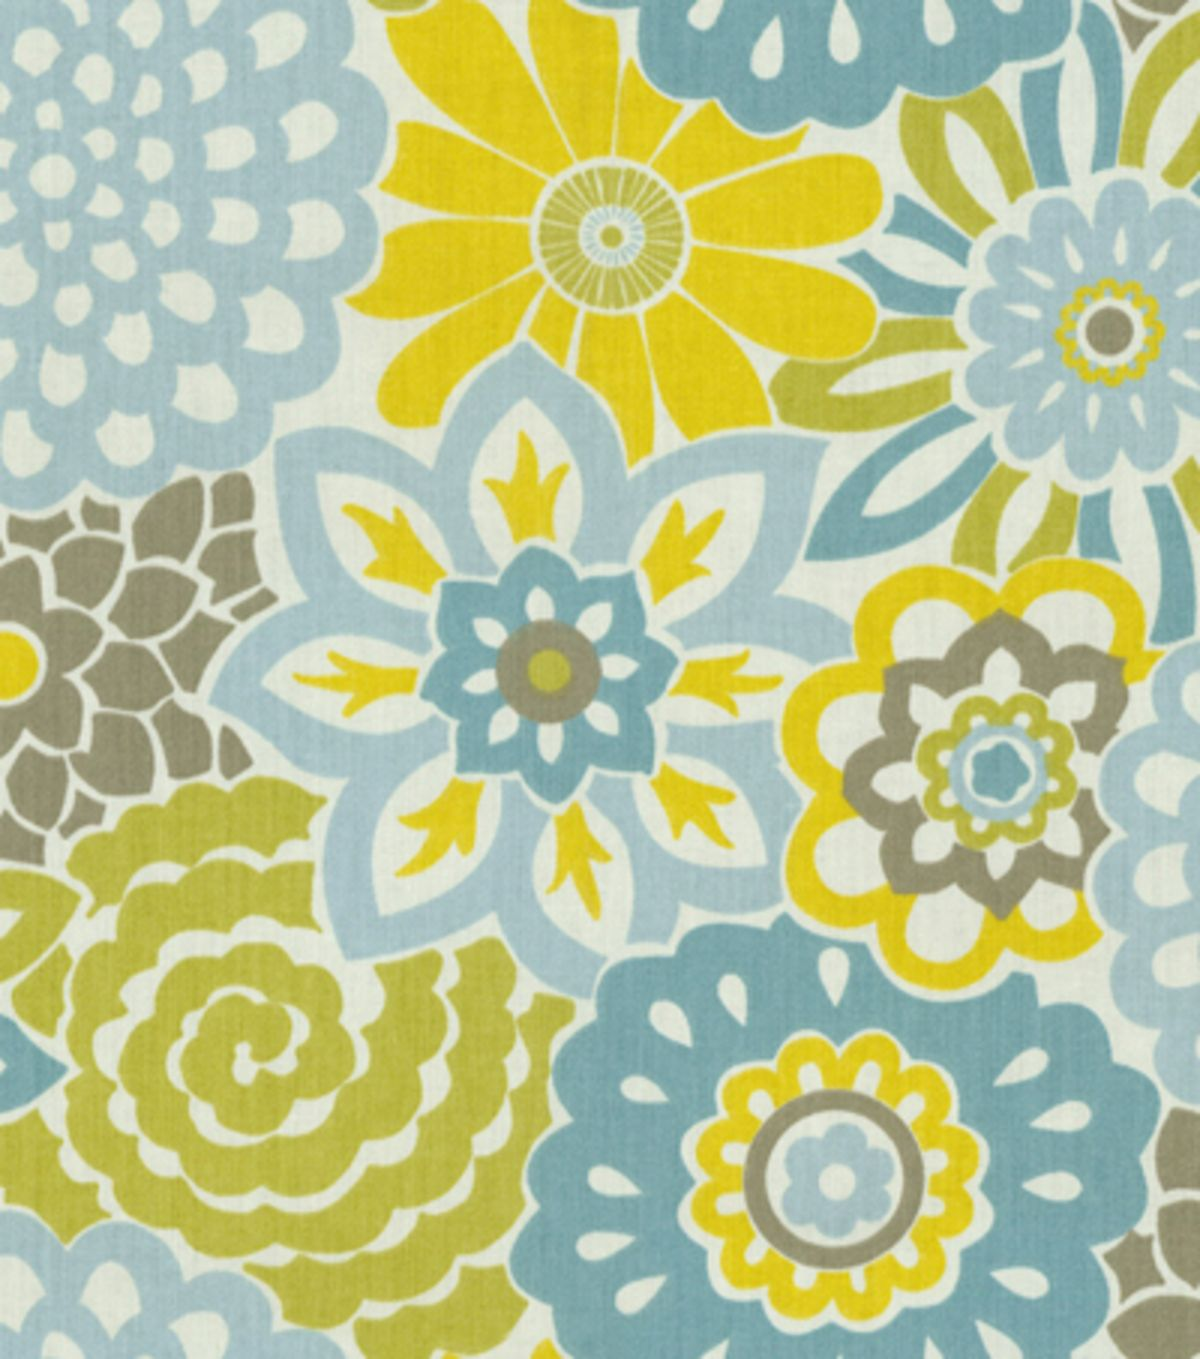 Pretty Yellow And Blue Flower Fabric Waverly Waverize Fabric Fabric Finds With Joann